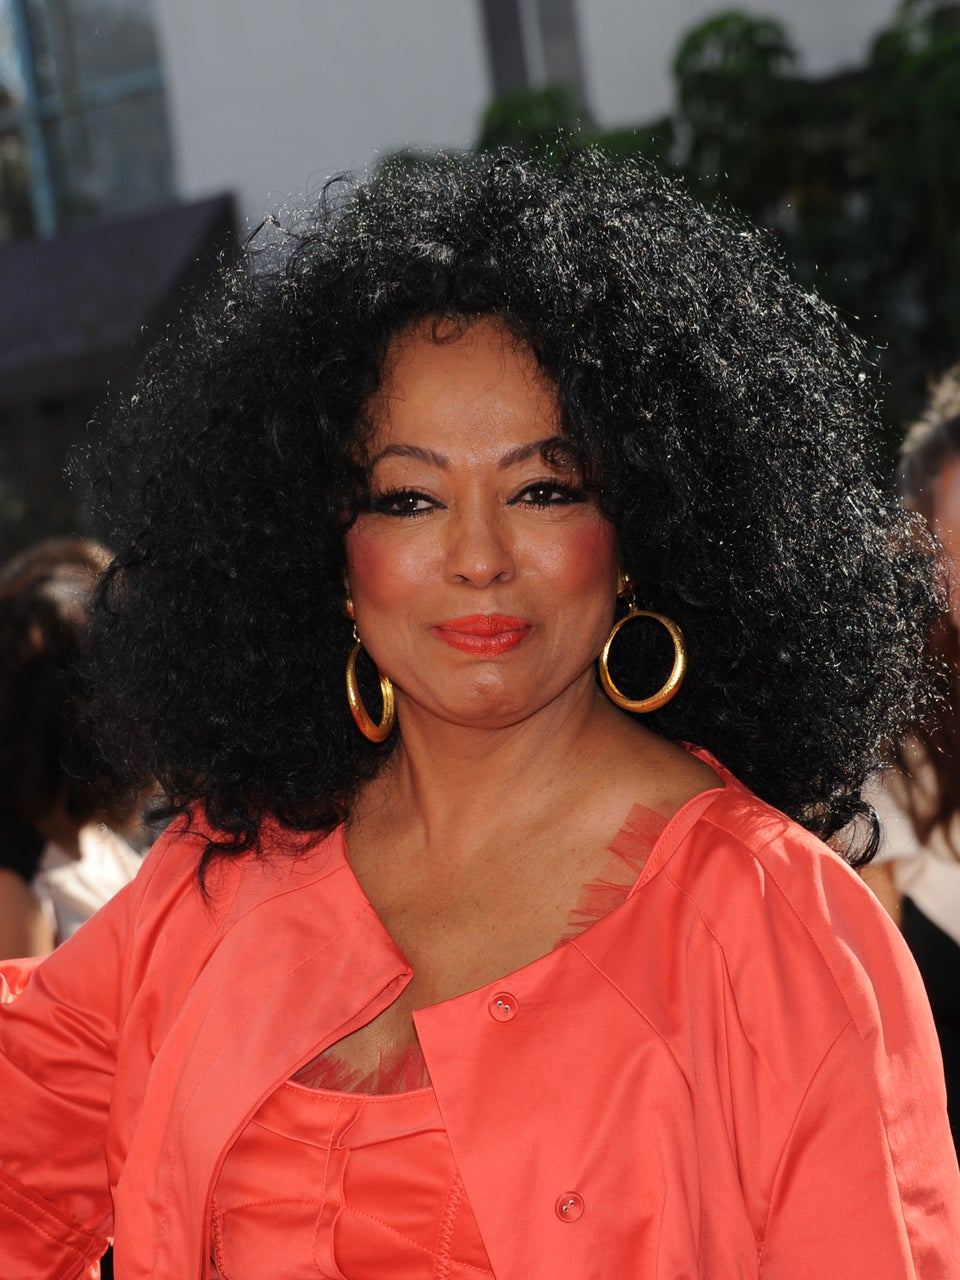 Diana Ross: Jackson Custody Issues Should Remain Private